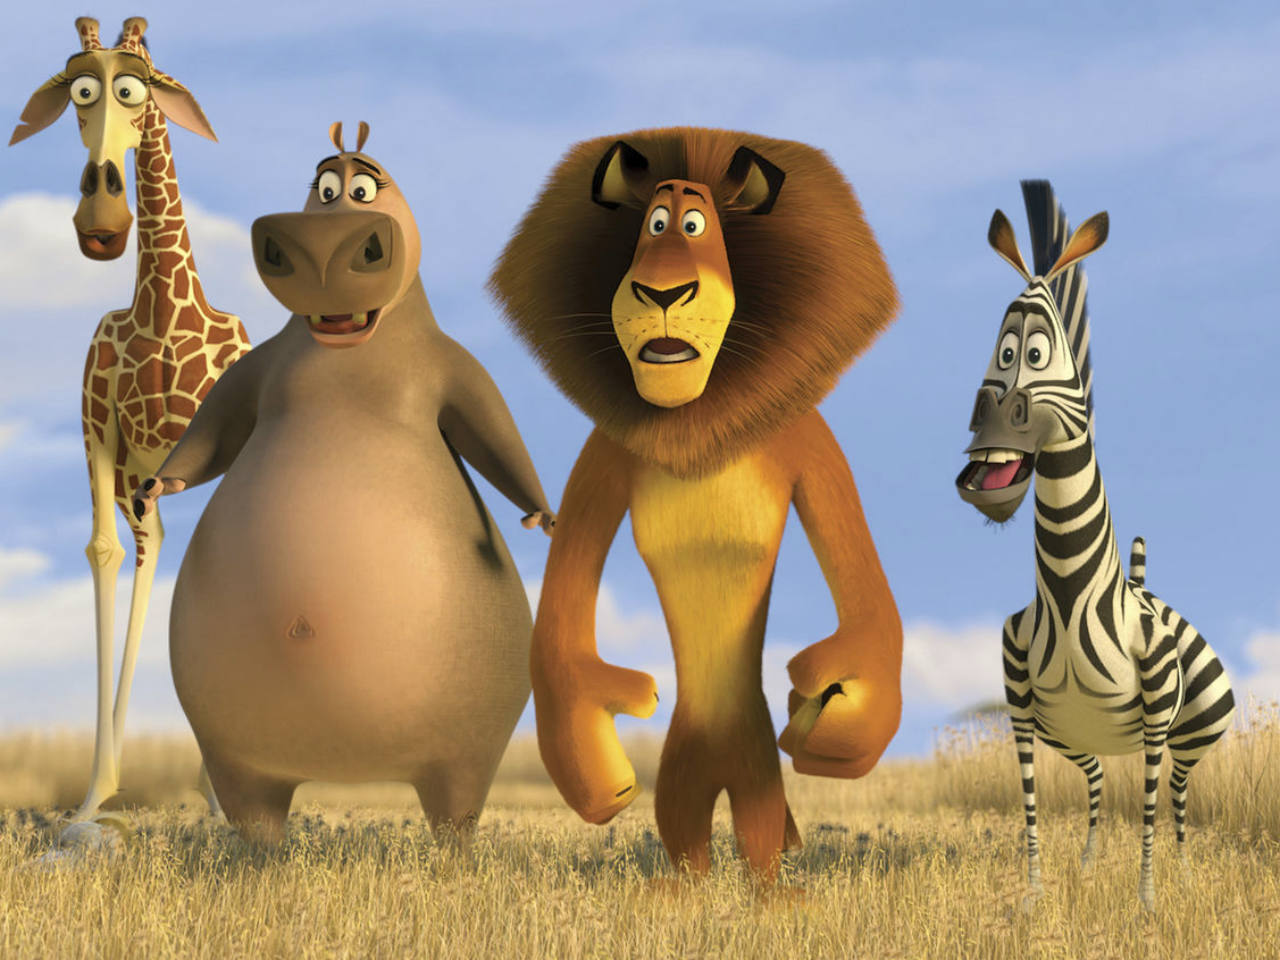 A still of the animals from the kids' movie Madagascar Escape 2 Africa